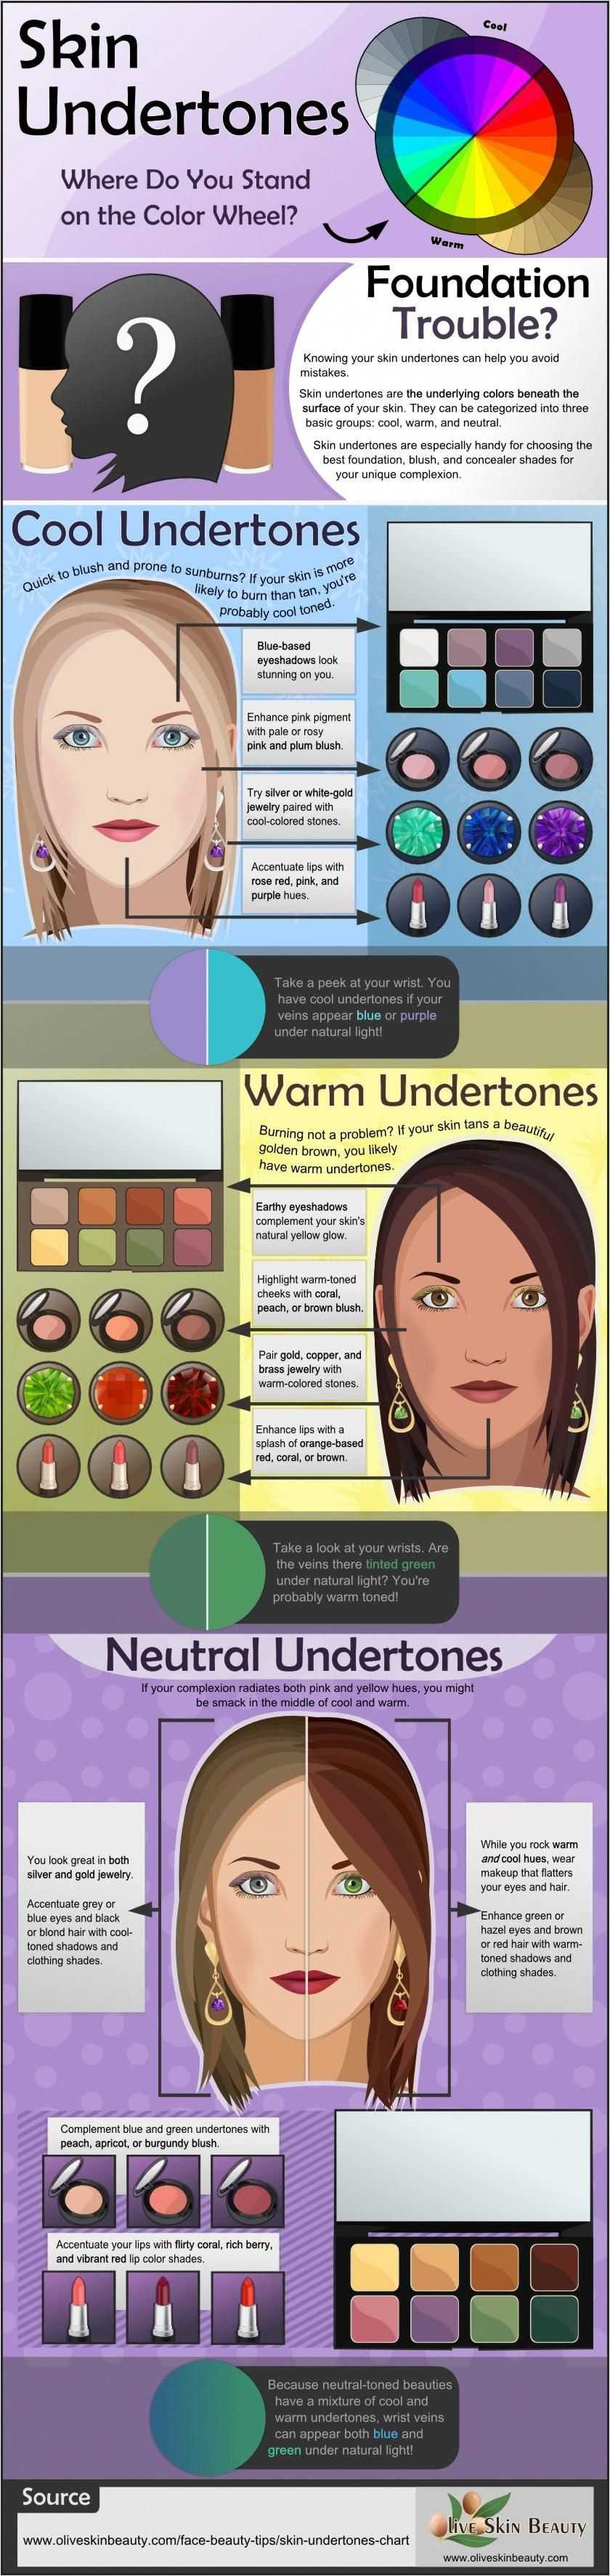 Skin Undertones Where Do You Stand On the Color Wheel